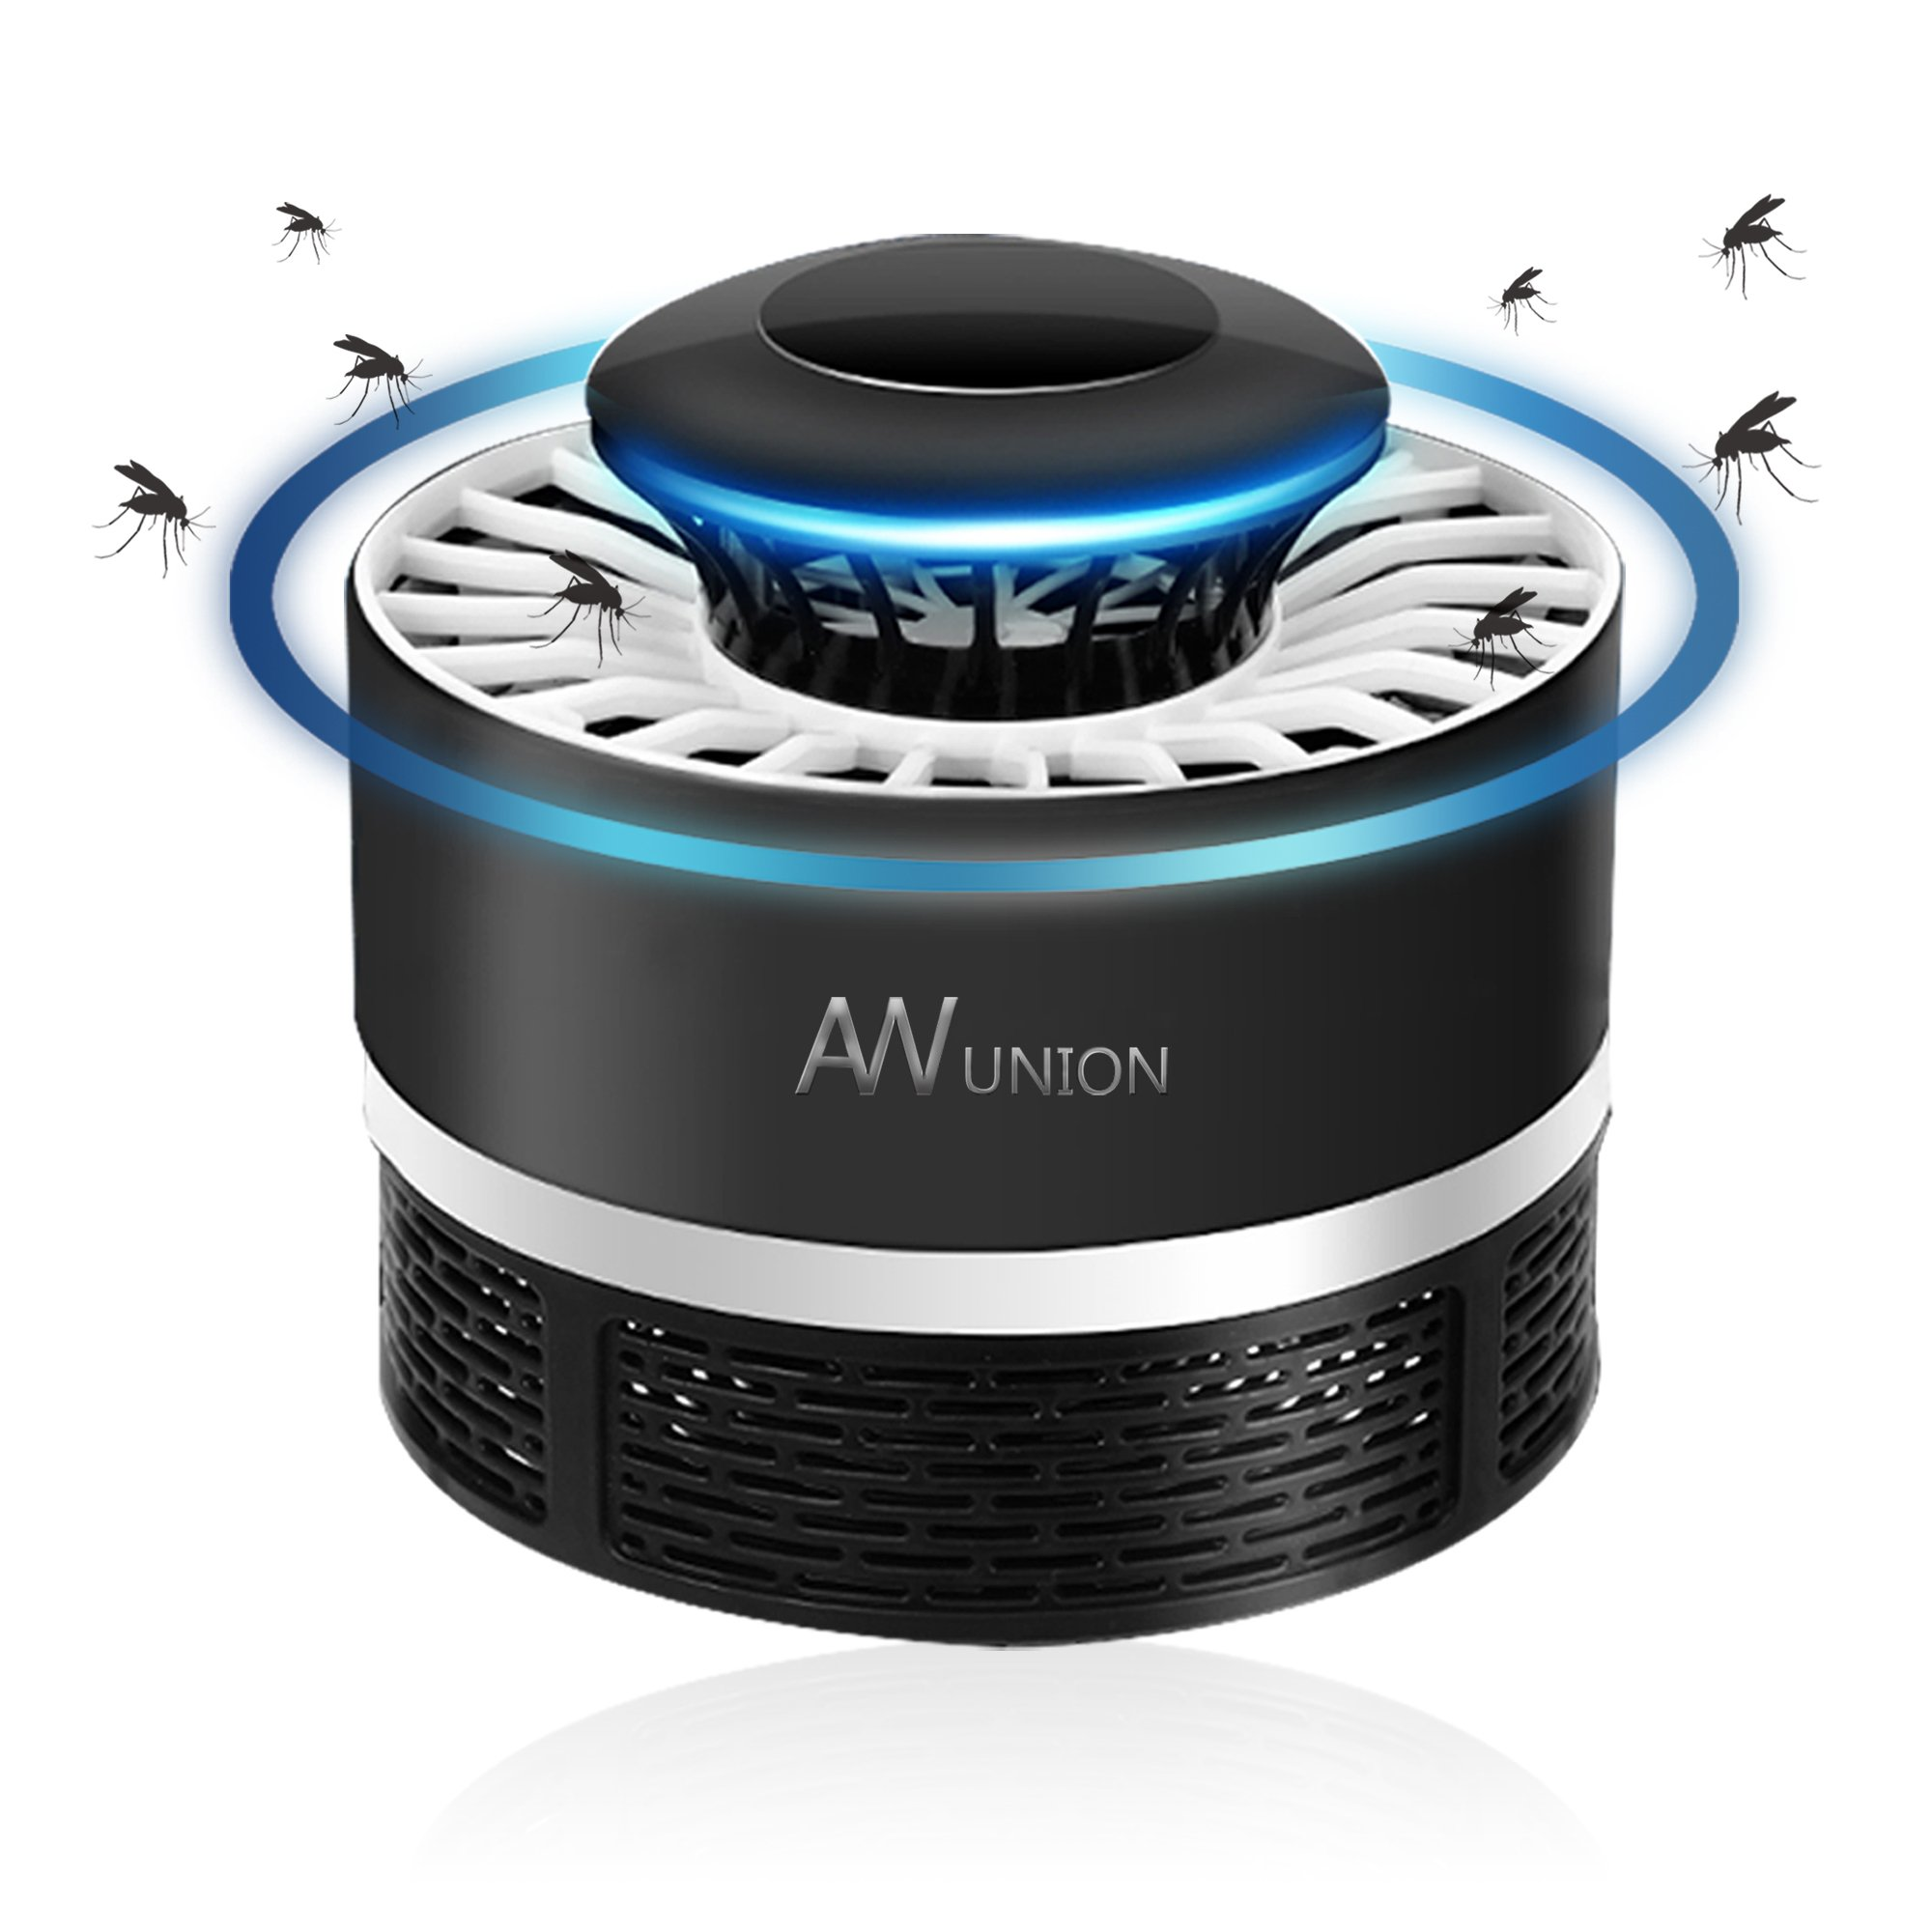 AW union Mosquito Zapper Mosquito Killer, USB Powered Mosquito Trap Lamp, Chemical-free UV LED Light Electric Bug Zapper, Photocatalyst Fly Bug Dispeller with Suction Fan for Indoor Home (Black)